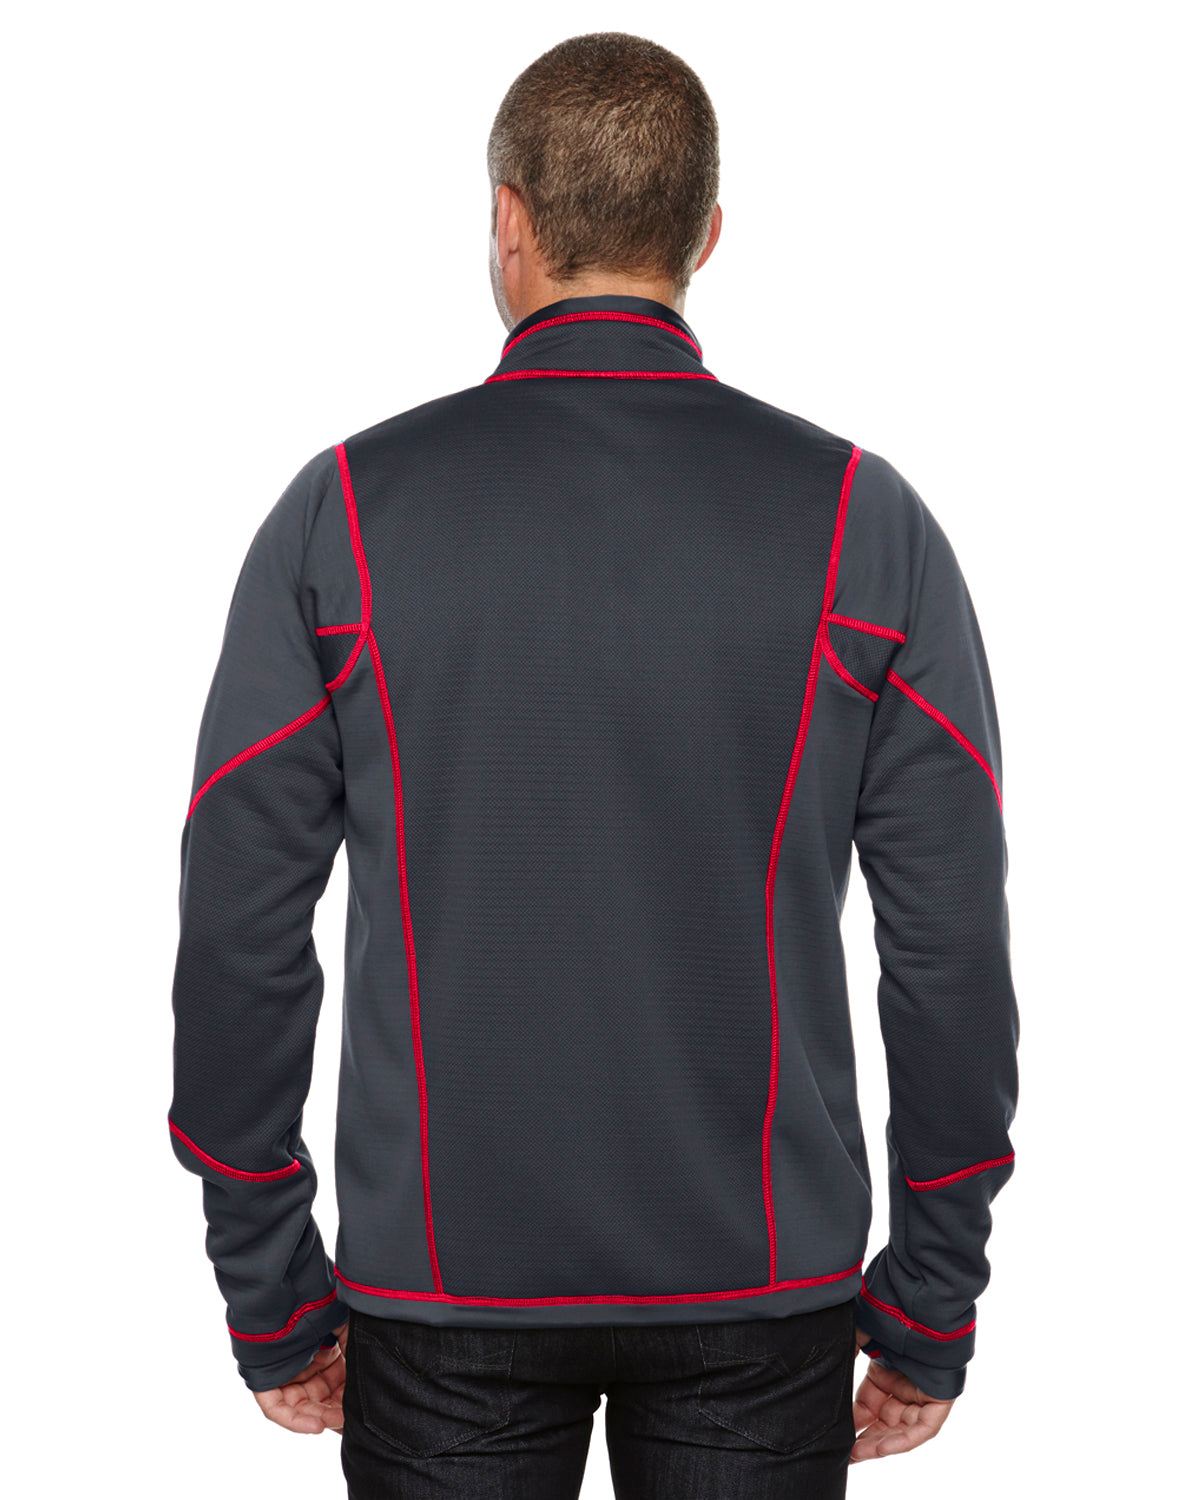 NORTH END MEN'S TEXTURED BONDED FLEECE JACKET